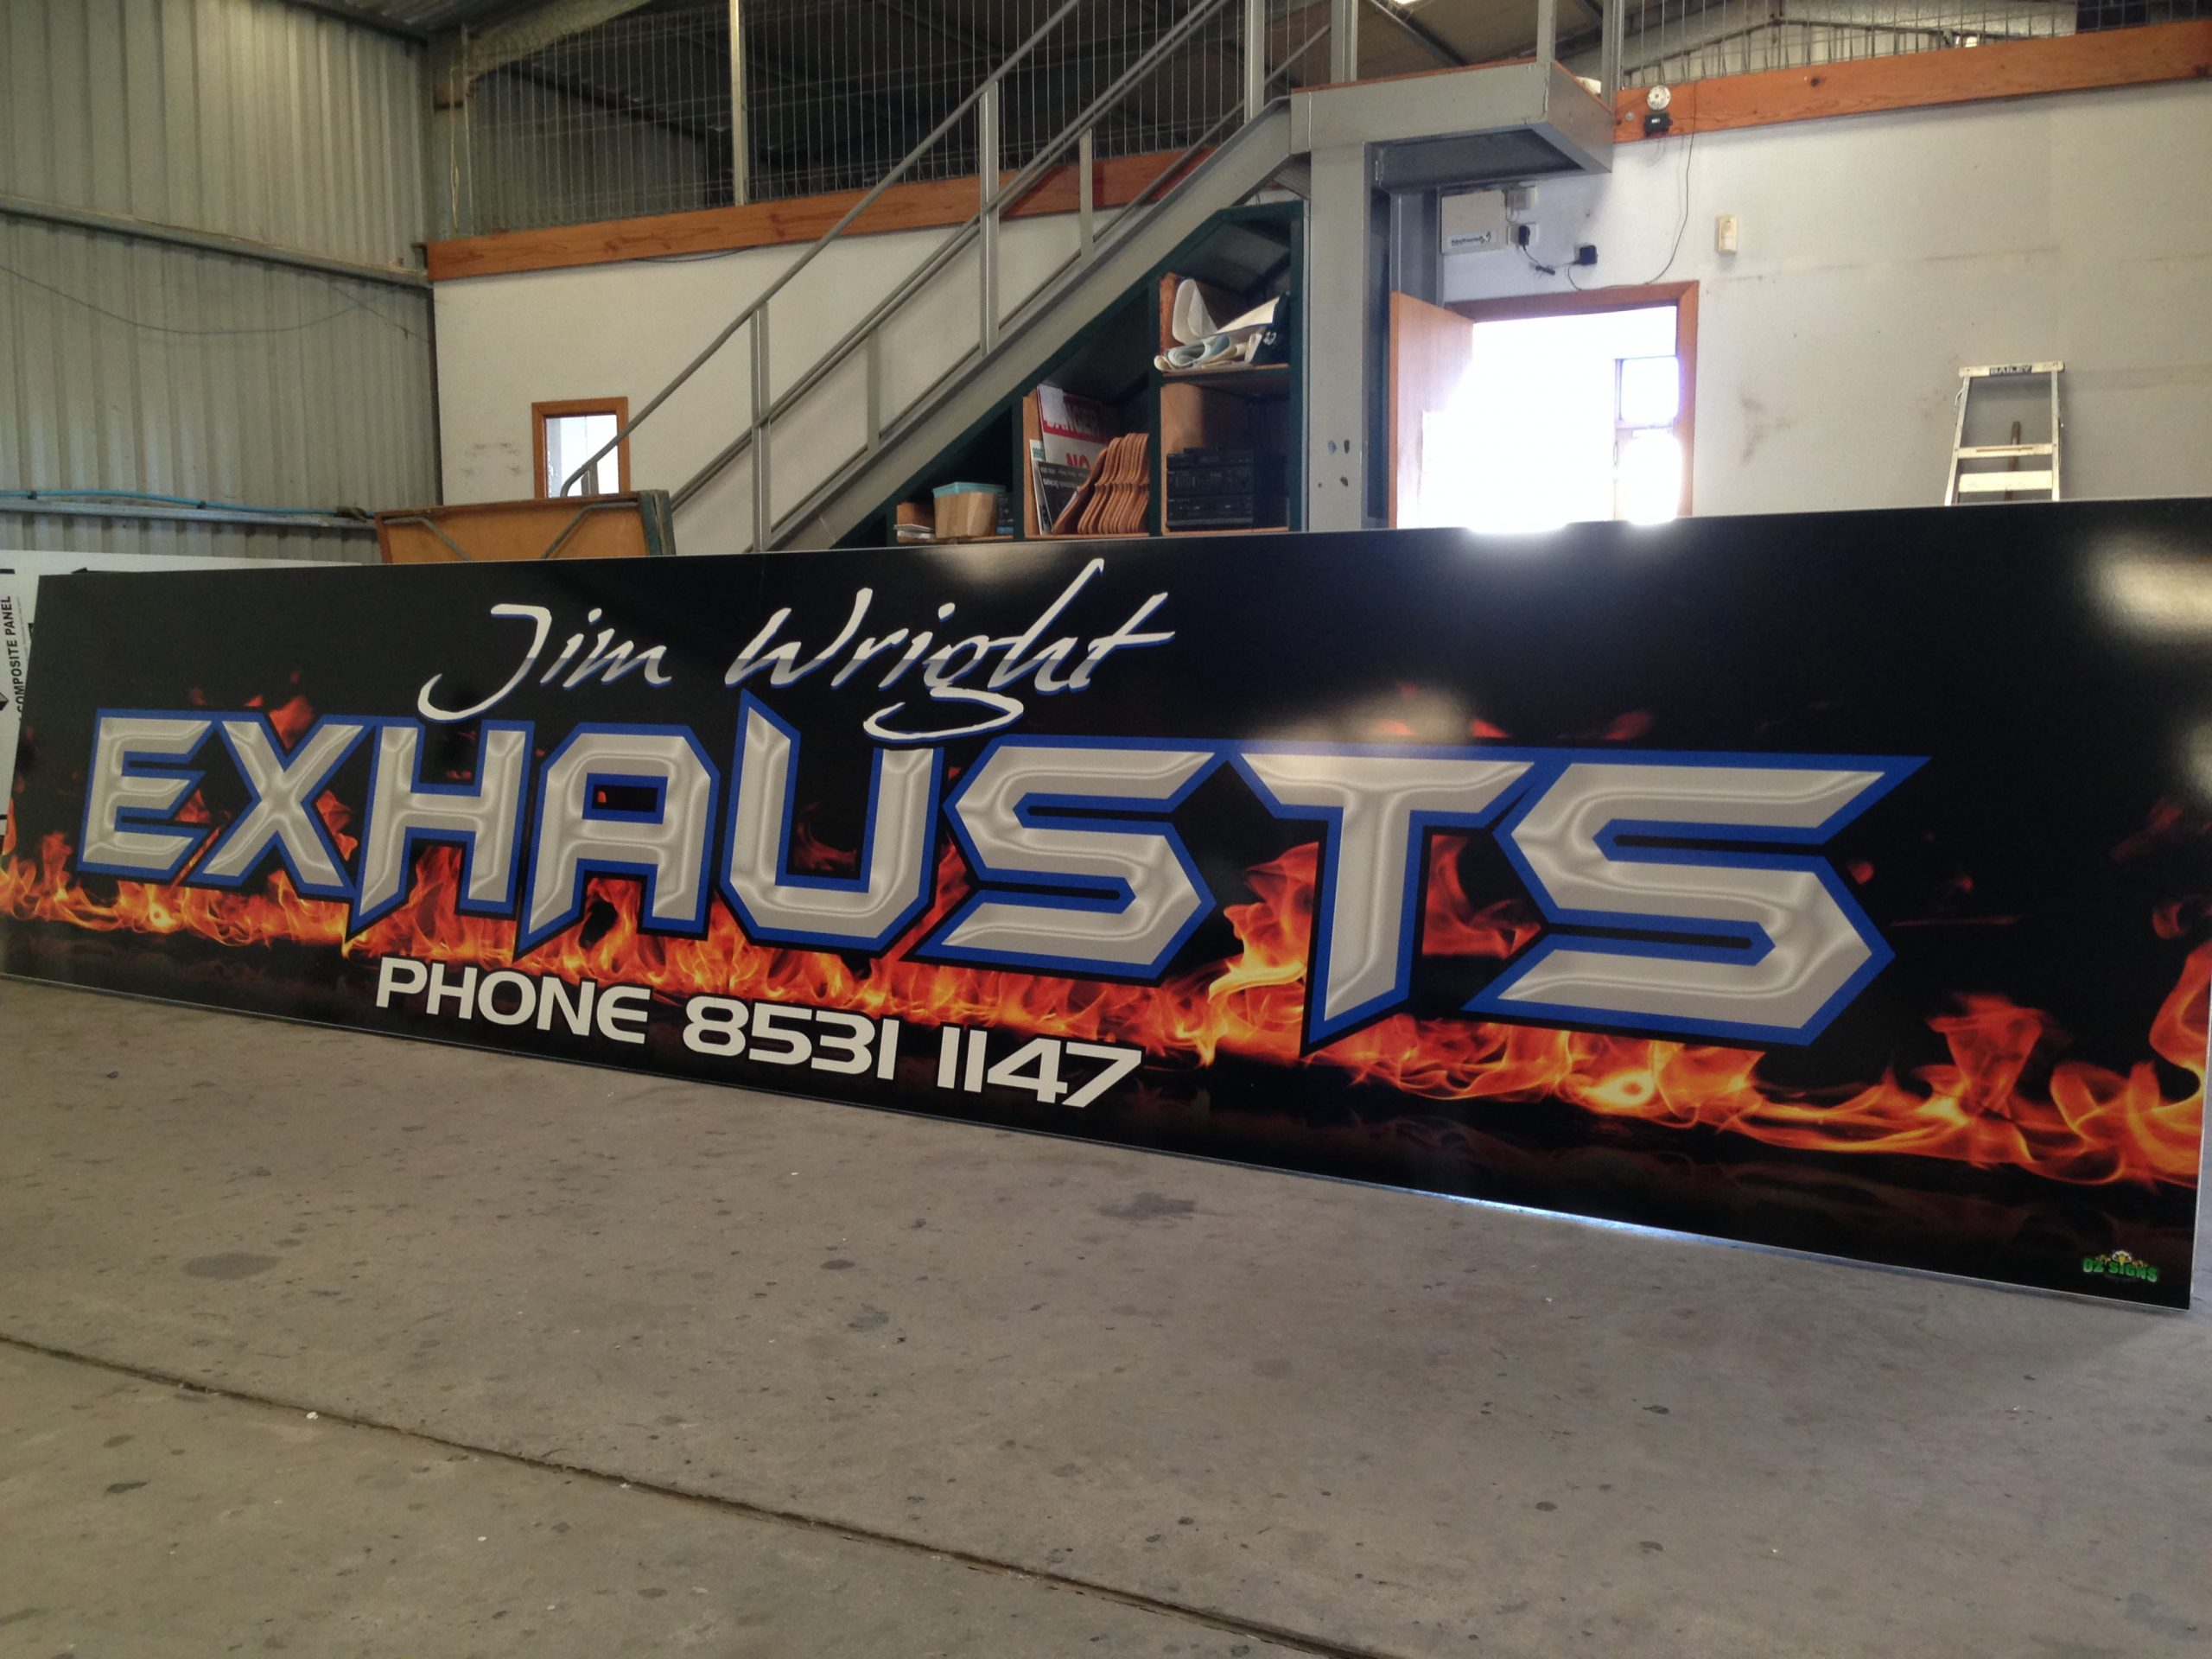 Jim Wright Exhausts